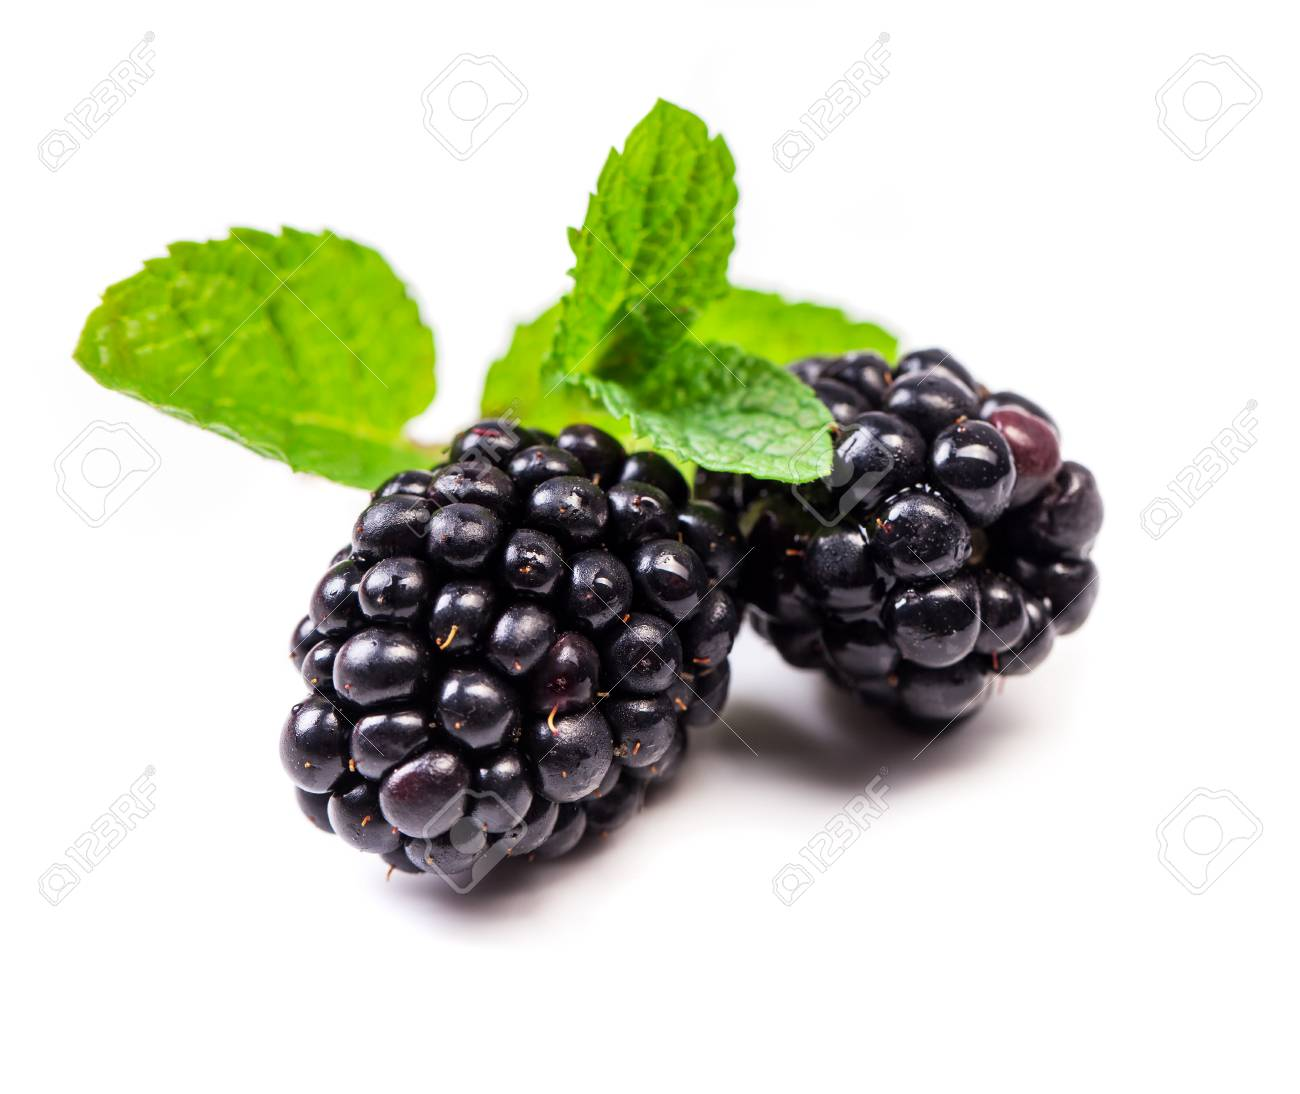 Blackberry with mint leaves isolated in white - 107667756